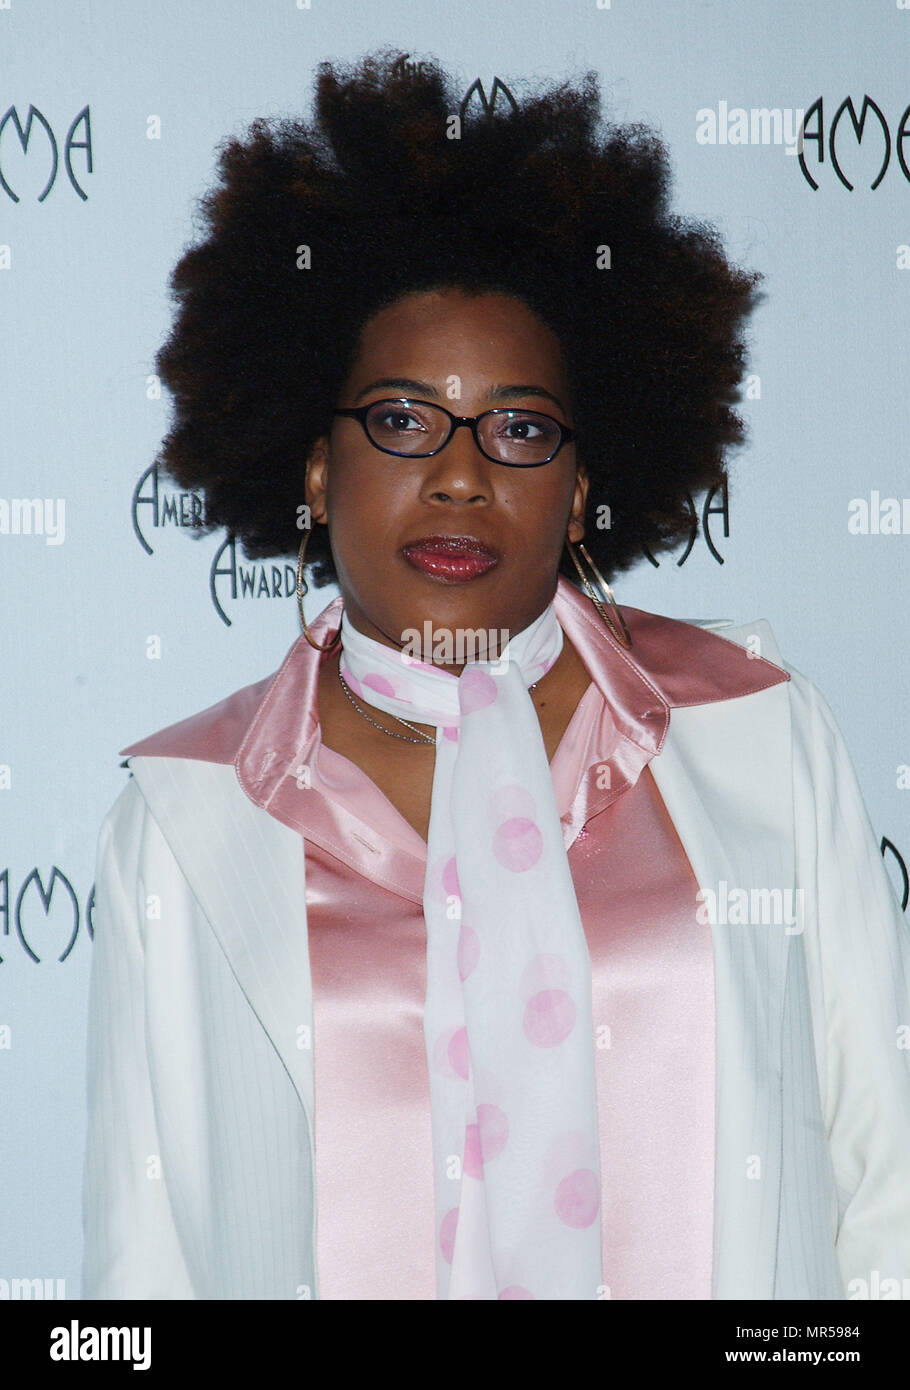 Macy Gray presenting the nominees at the American Music Awards at the Beverly Hills Hotel in Los Angeles. September 16, 2003.GrayMacy_10 Red Carpet Event, Vertical, USA, Film Industry, Celebrities,  Photography, Bestof, Arts Culture and Entertainment, Topix Celebrities fashion /  Vertical, Best of, Event in Hollywood Life - California,  Red Carpet and backstage, USA, Film Industry, Celebrities,  movie celebrities, TV celebrities, Music celebrities, Photography, Bestof, Arts Culture and Entertainment,  Topix, headshot, vertical, one person,, from the year , 2003, inquiry tsuni@Gamma-USA.com - Stock Image